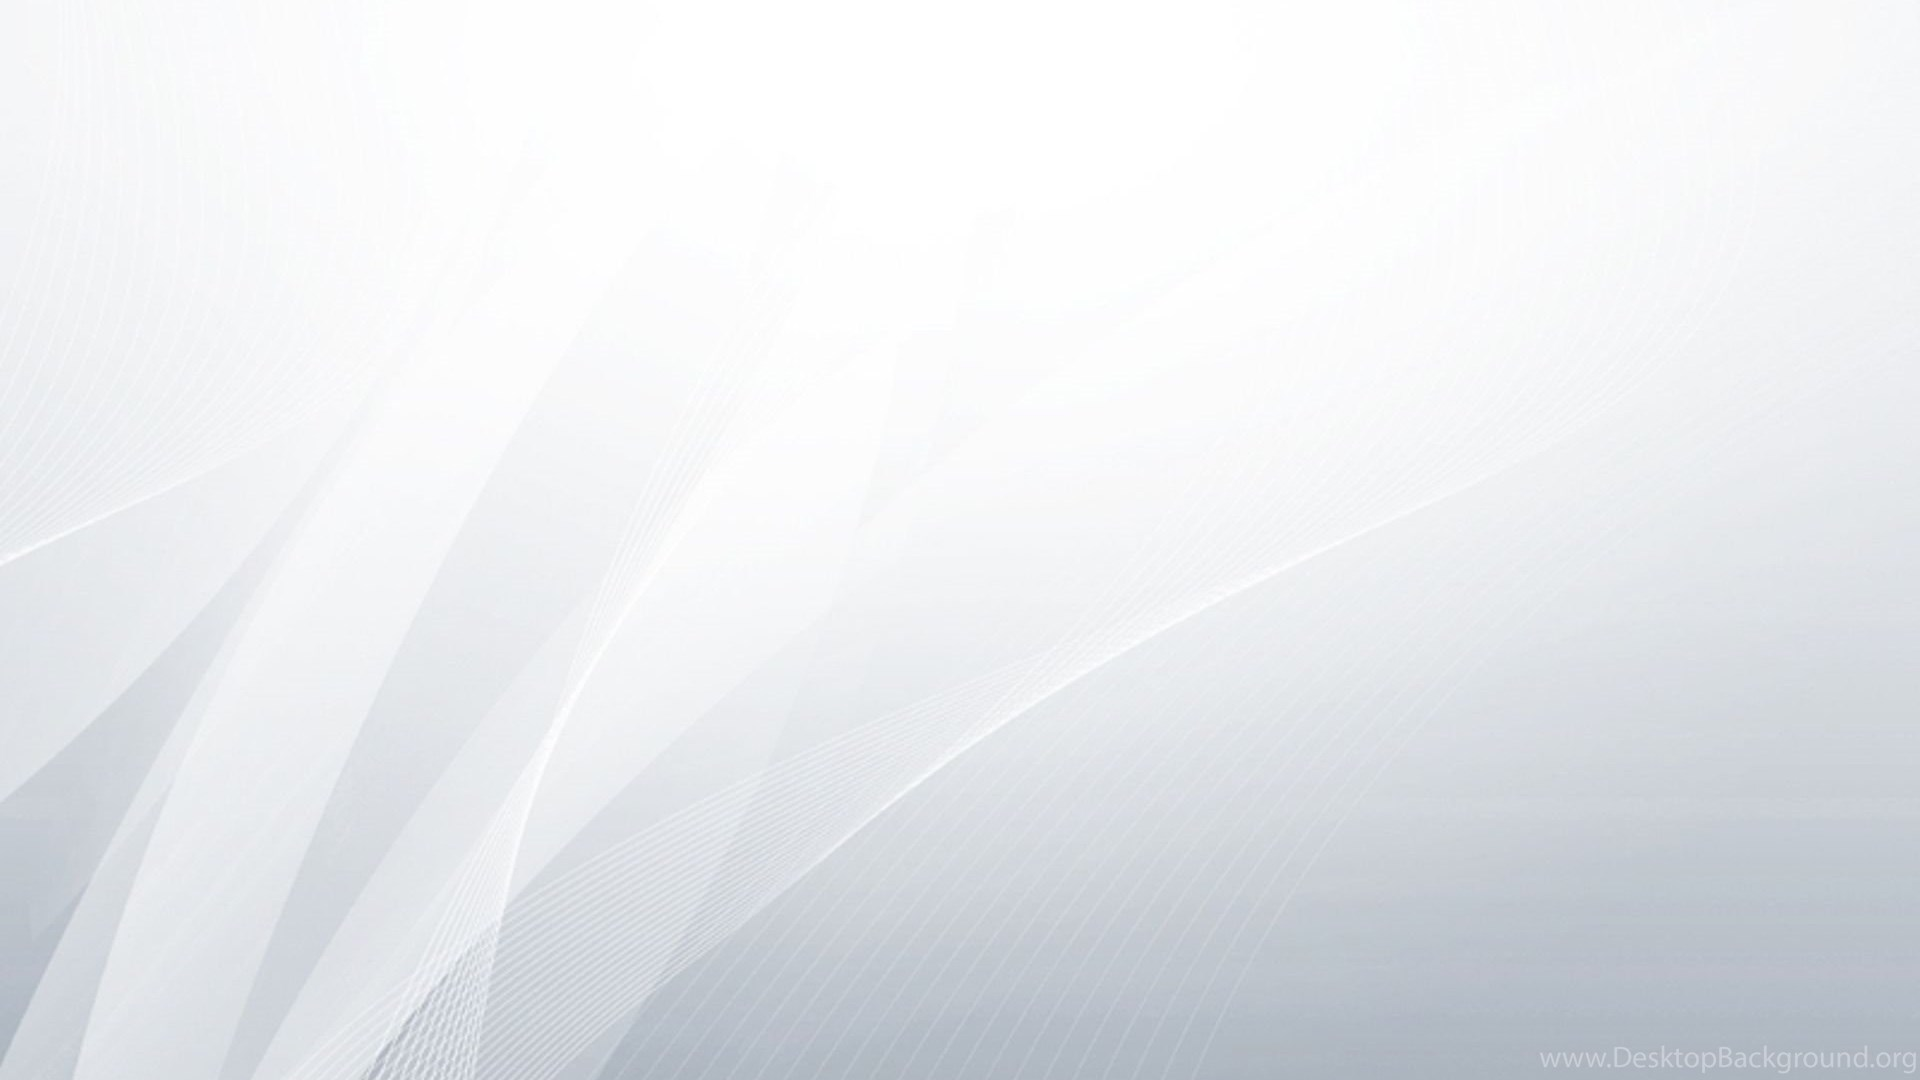 White Abstract Wallpapers Images Flip Wallpapers Download 1920x1080